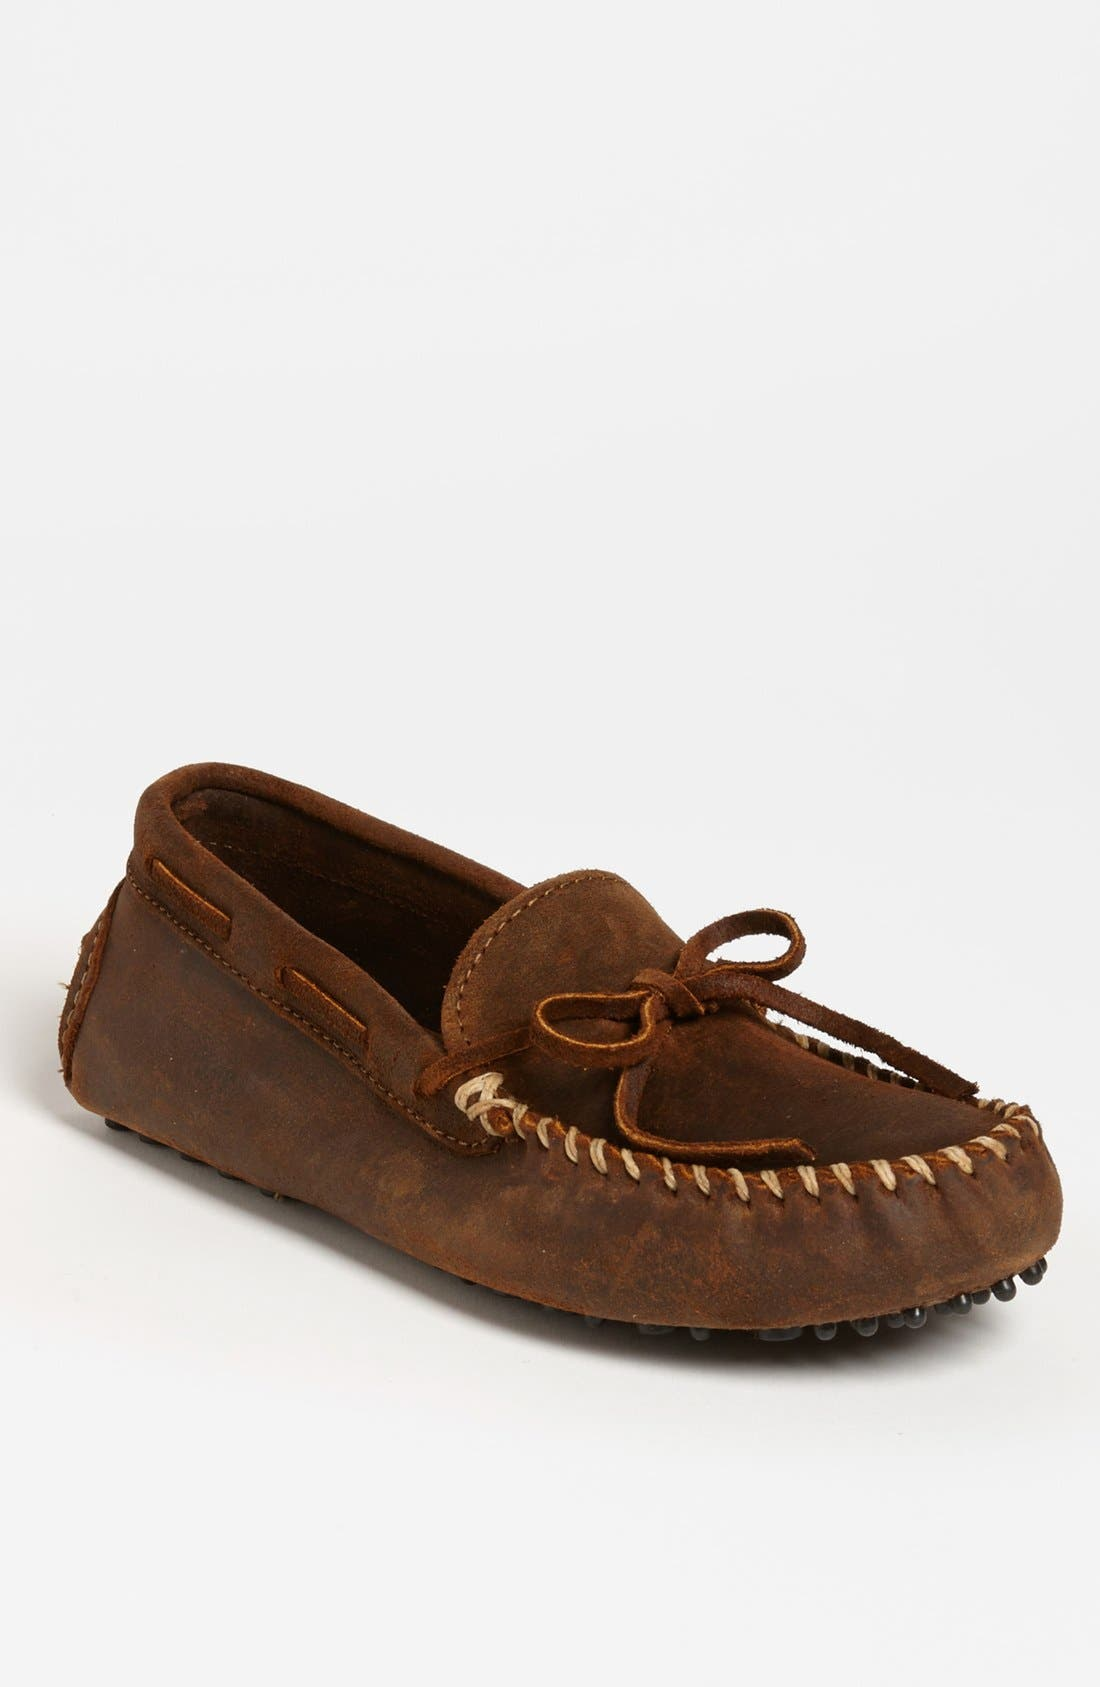 MINNETONKA Suede Driving Shoe, Main, color, BROWN